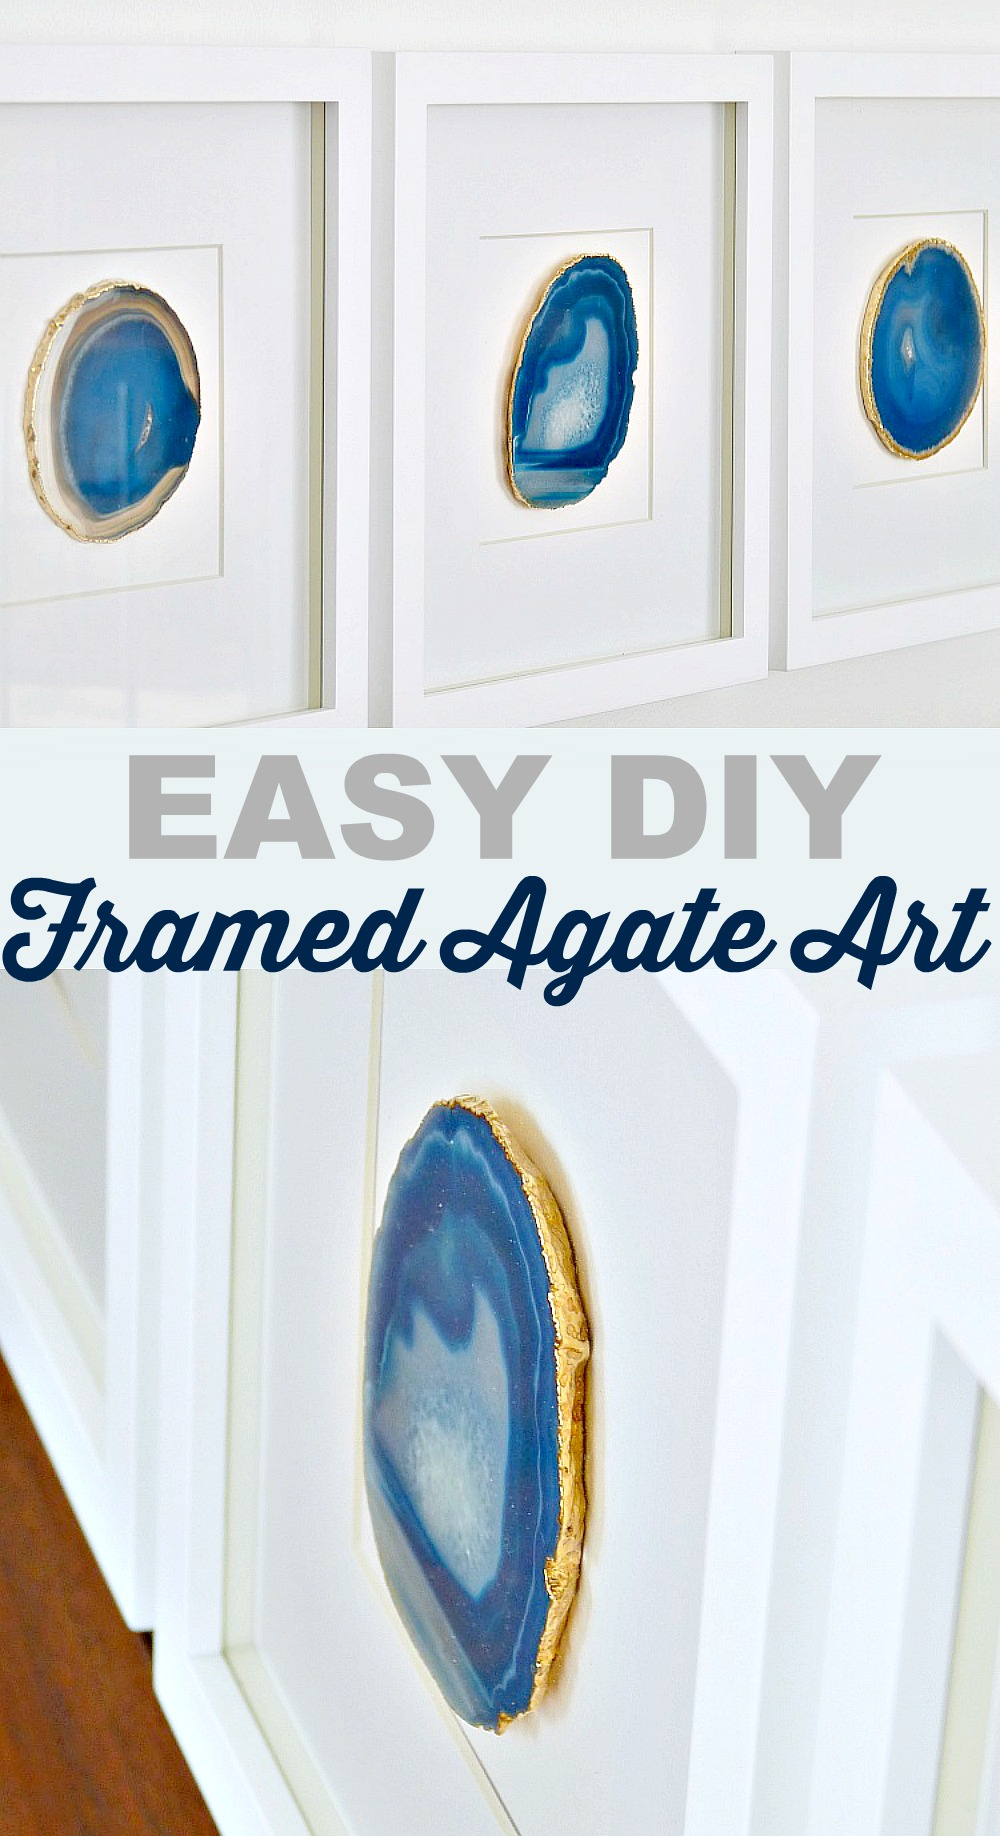 Diy agate art framed blue agate slices dans le lakehouse norrie pottery and now the framed agate slices the dining room has become such a fun and lively space with lots of character and personal touches solutioingenieria Choice Image